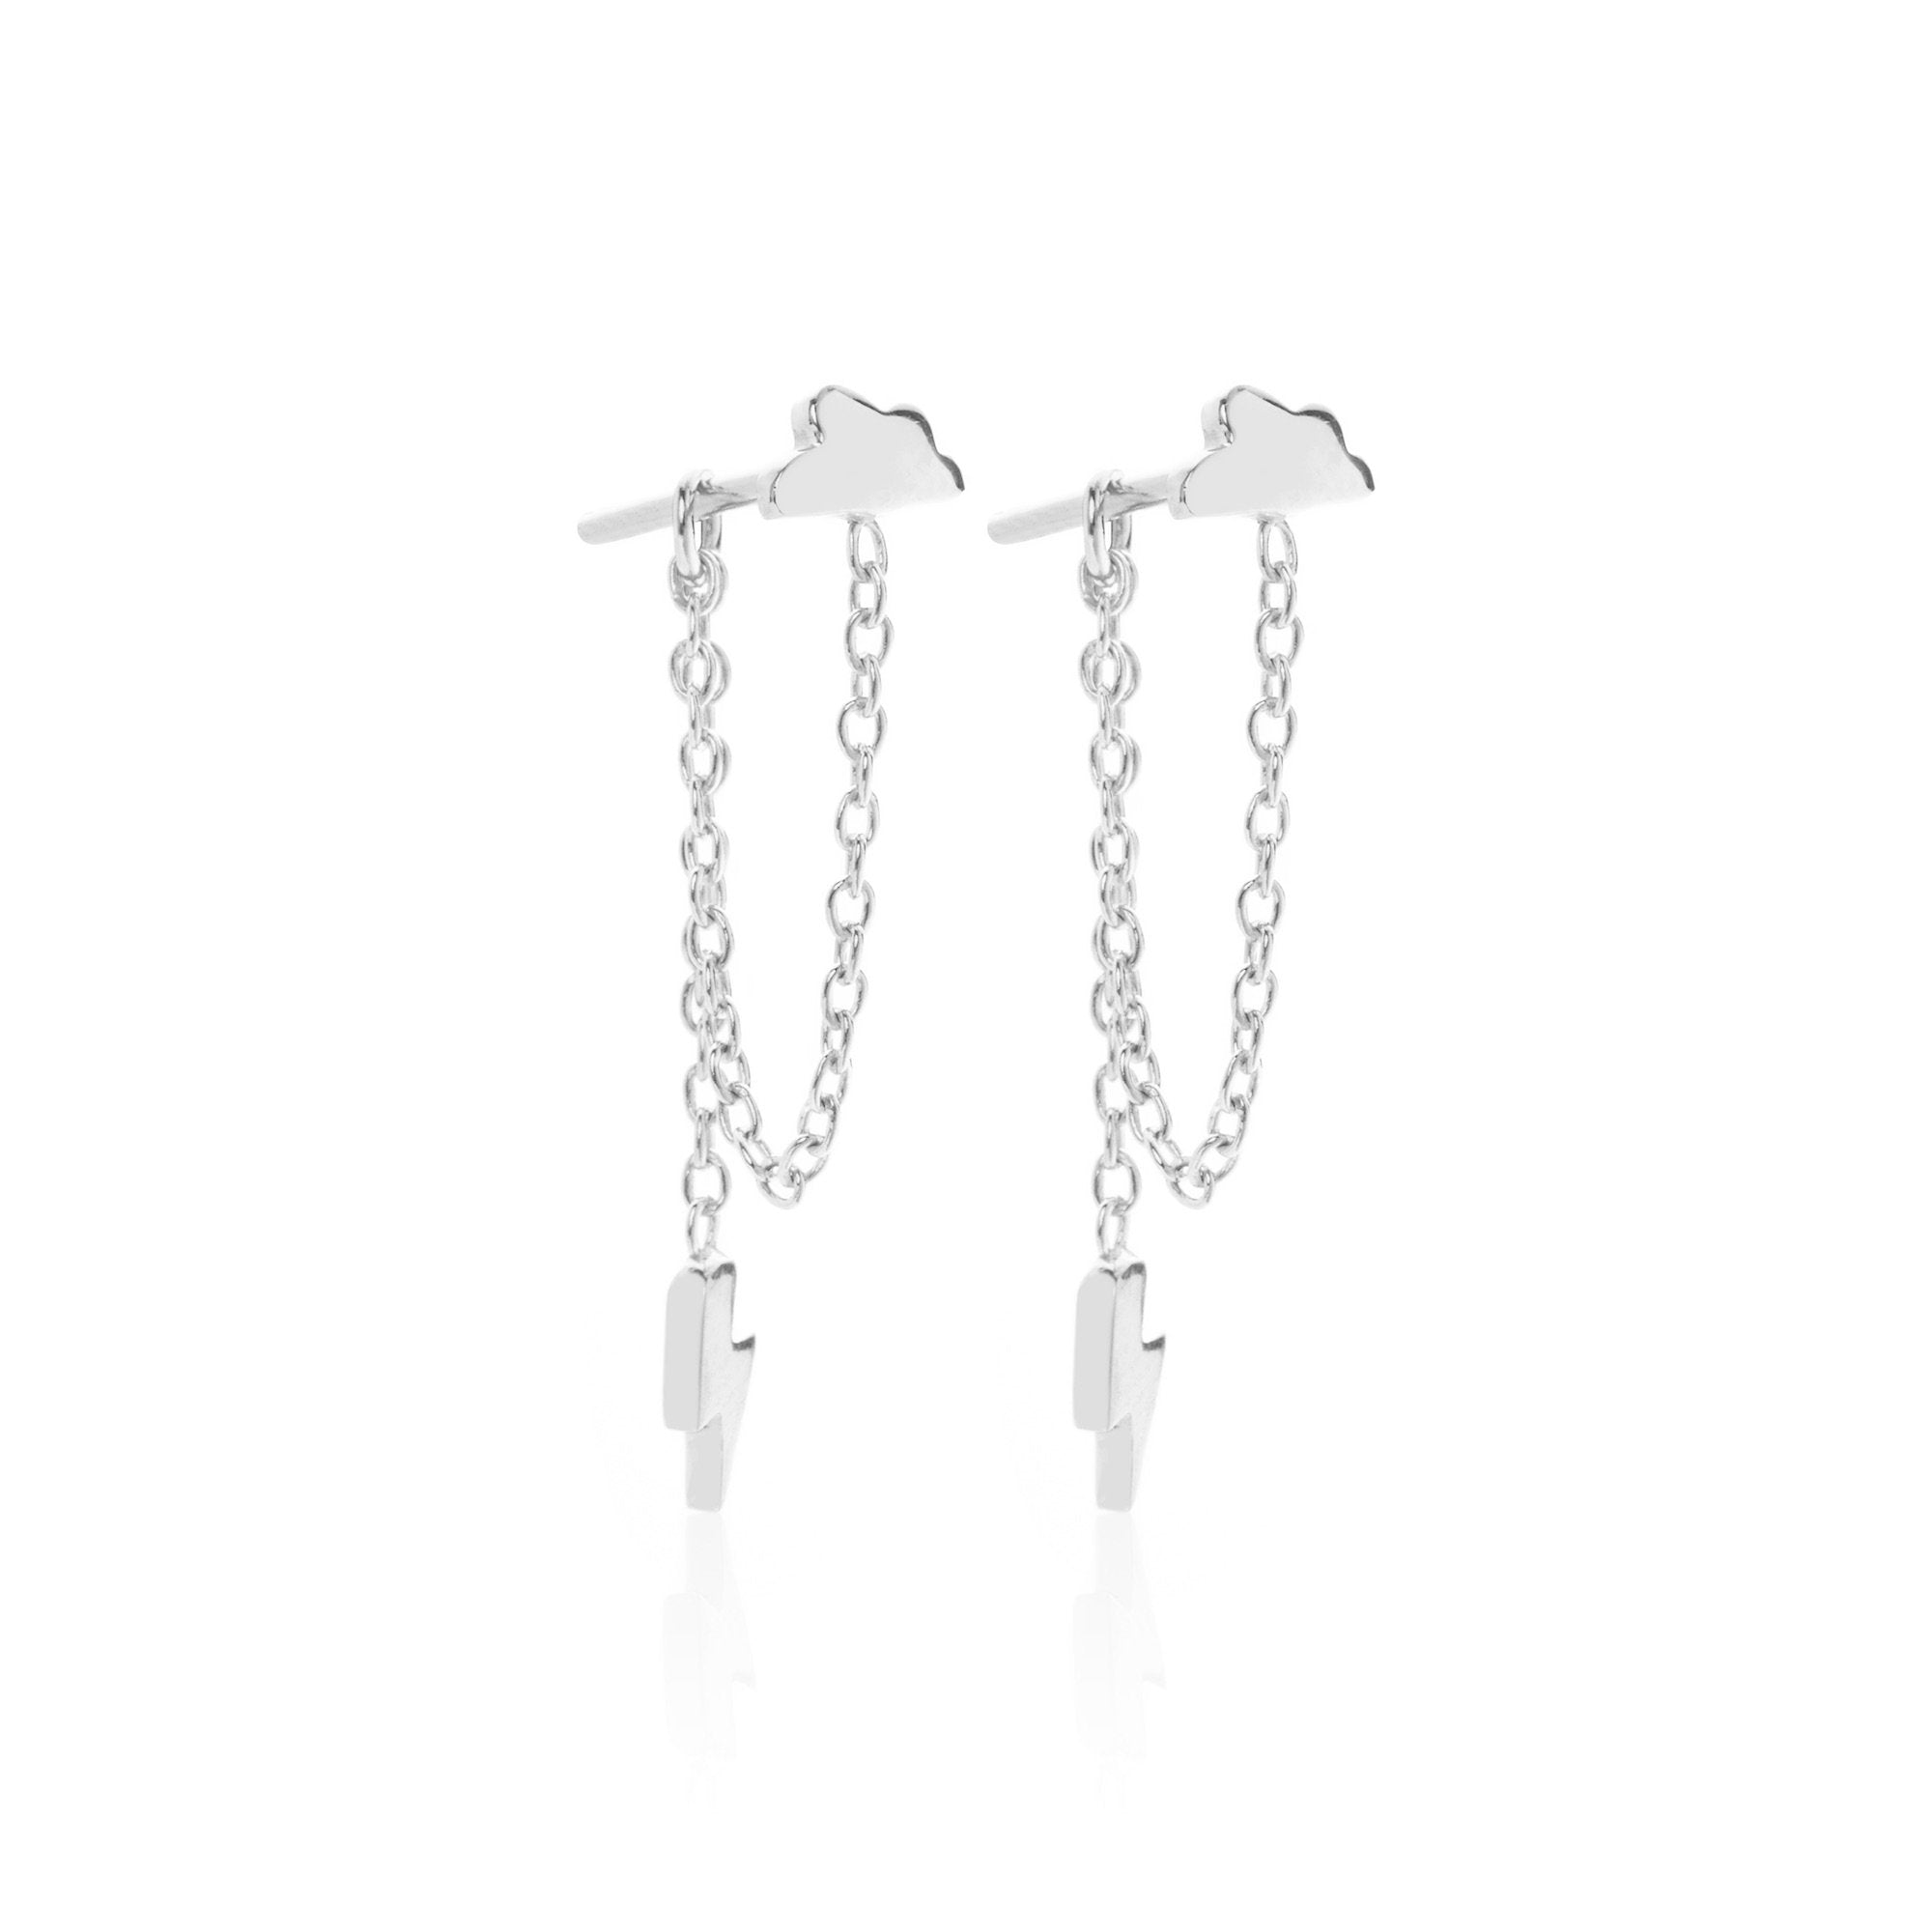 Silk & Steel Jewellery Superfine Silver Starry Night Drop earrings